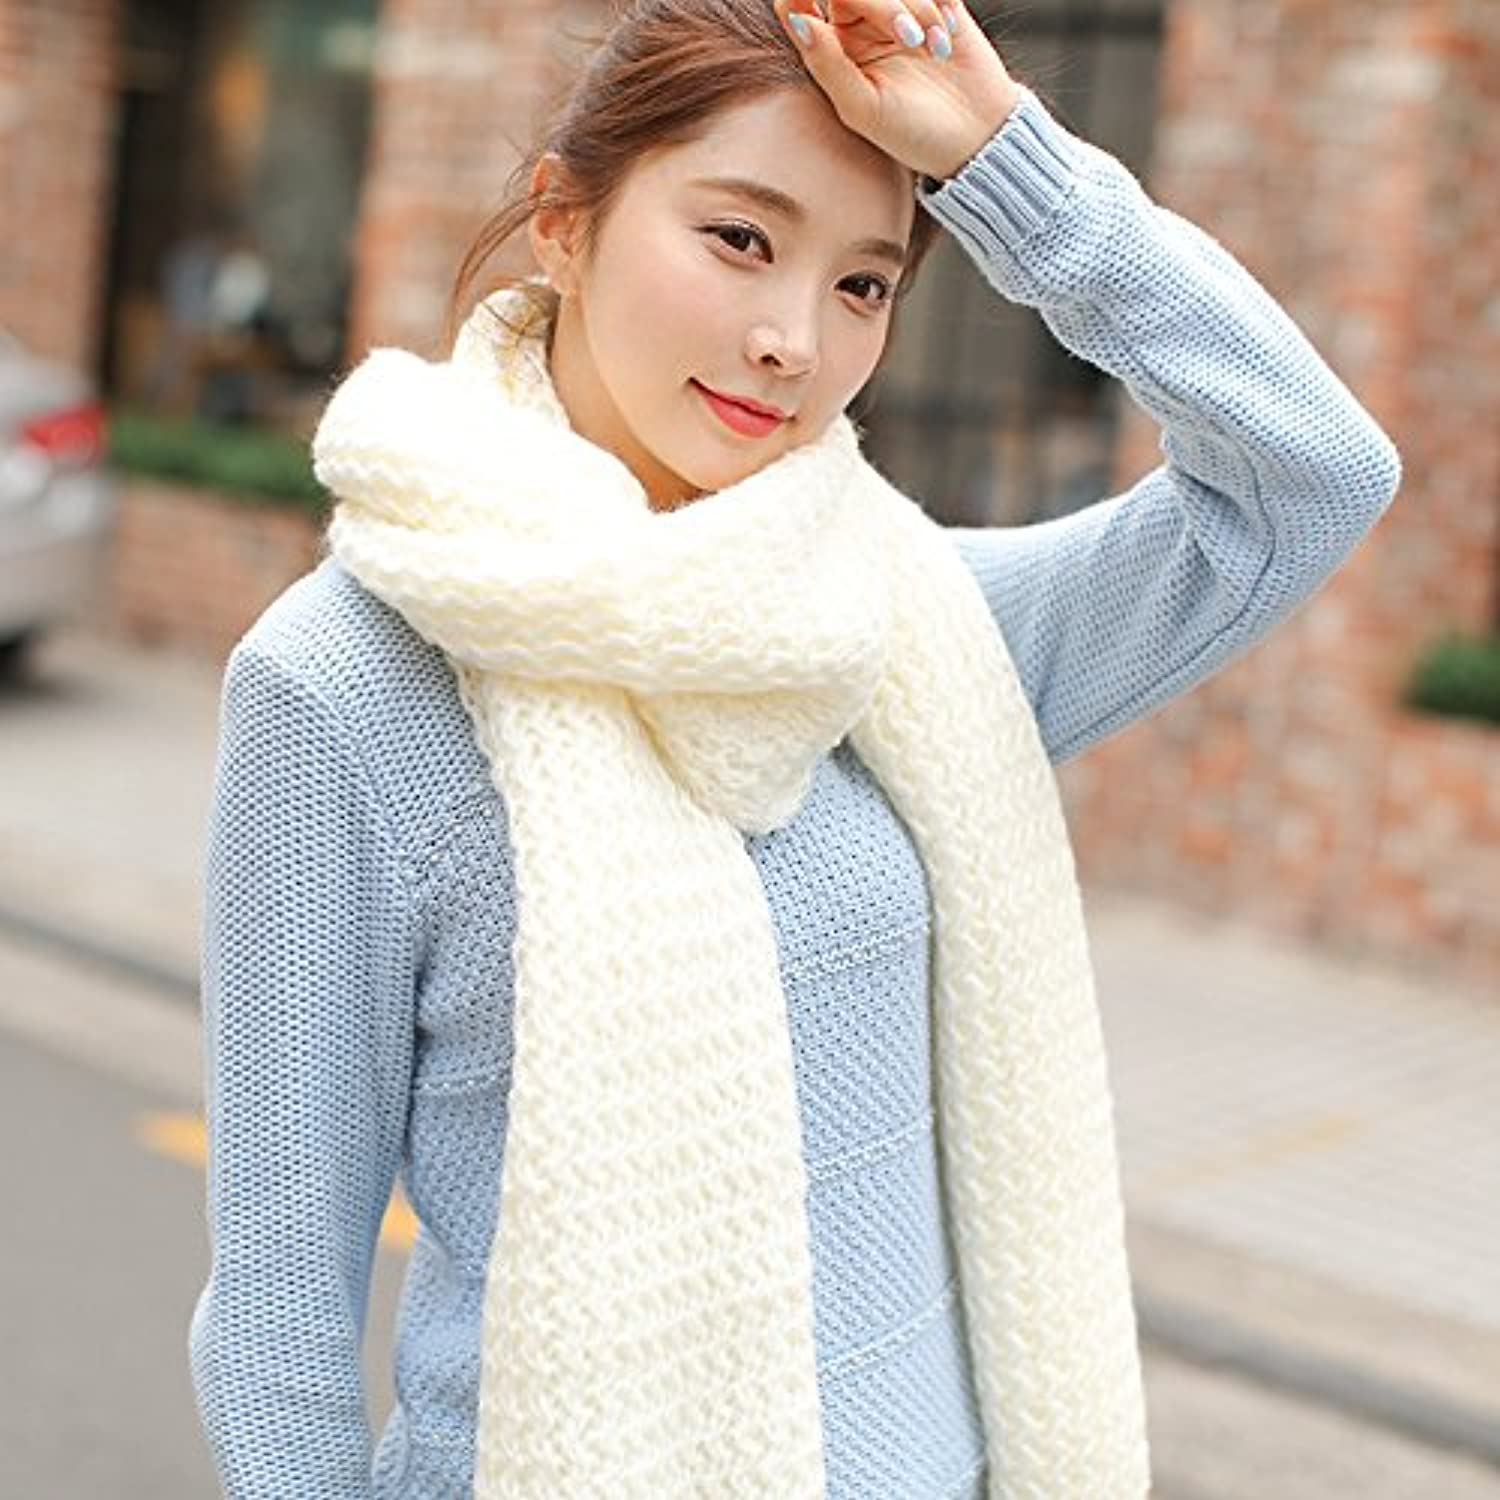 MDRWWinter Scarf The New Female Winter Scarf Wool Scarf Scarf color AllMatch Student Couple Thickened Knitting